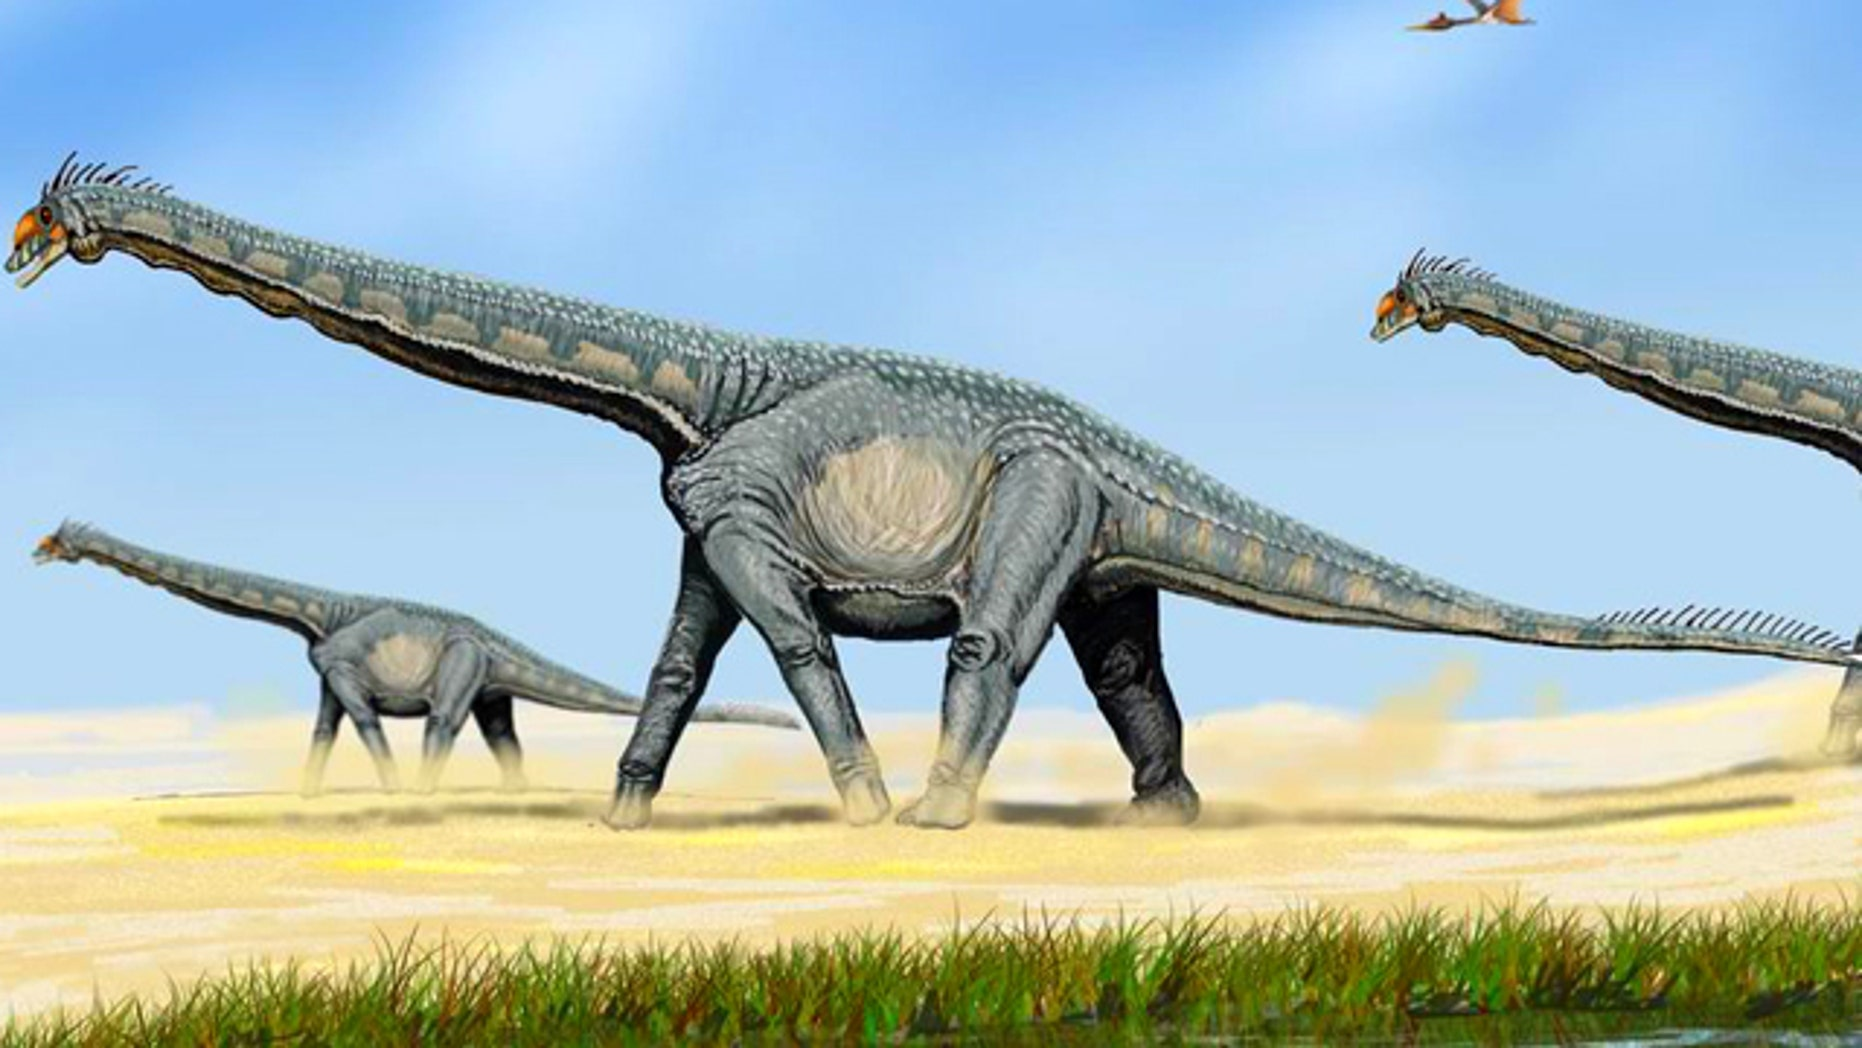 Alamosaurus, a member of the Sauropod family of giant, plant eating dinosaurs that roamed the planet tens of millions of years ago.